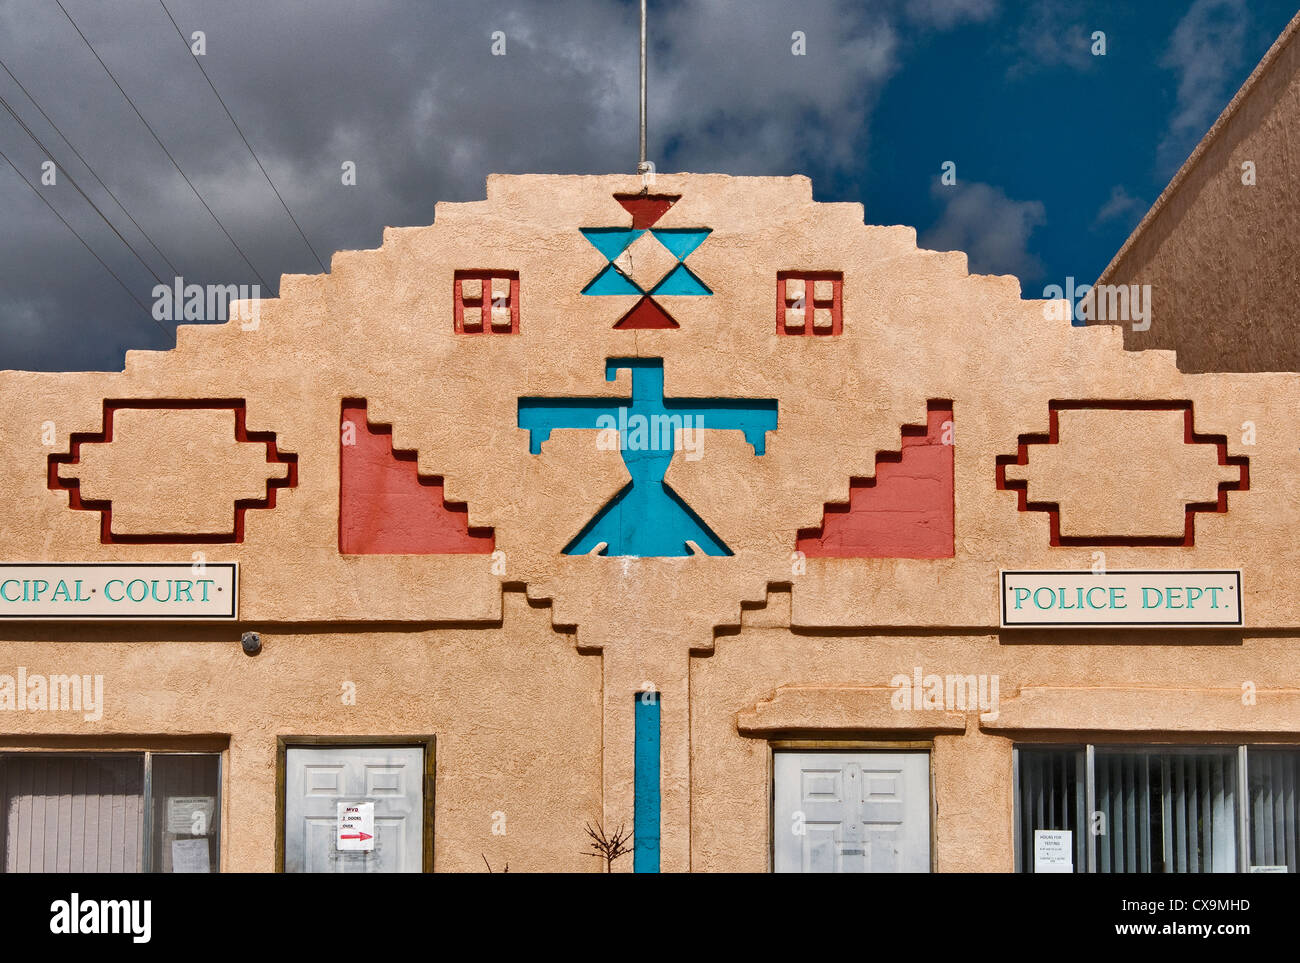 Indian art inspired motifs at police and court building in Mountainair, New Mexico, USA - Stock Image